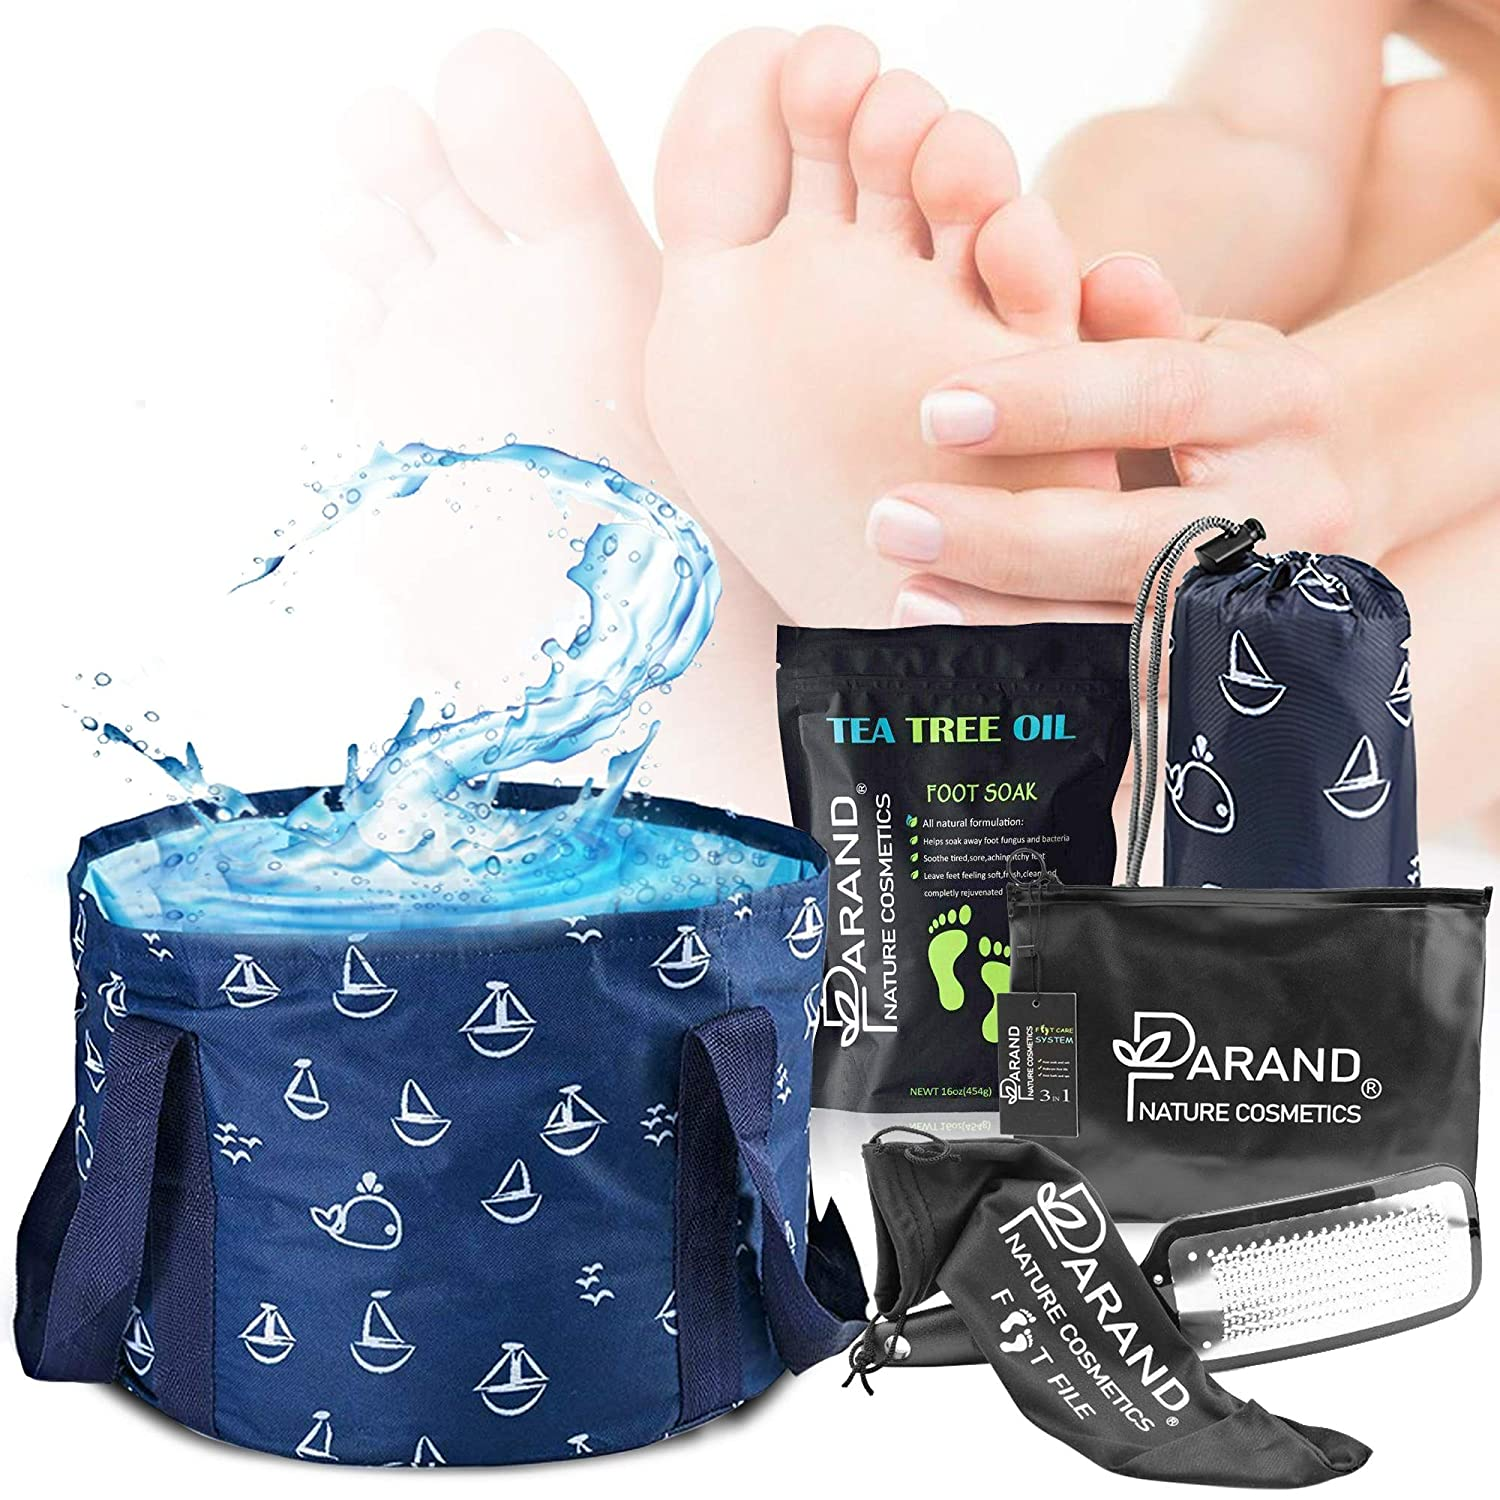 FOOT SPA KIT with Tea Tree Oils and Epsom Salts Soak, Steel File Callus Remover and Portable Tub for Soaking Feet, Soften Dry Cracked Heels, Therapeutic Skincare